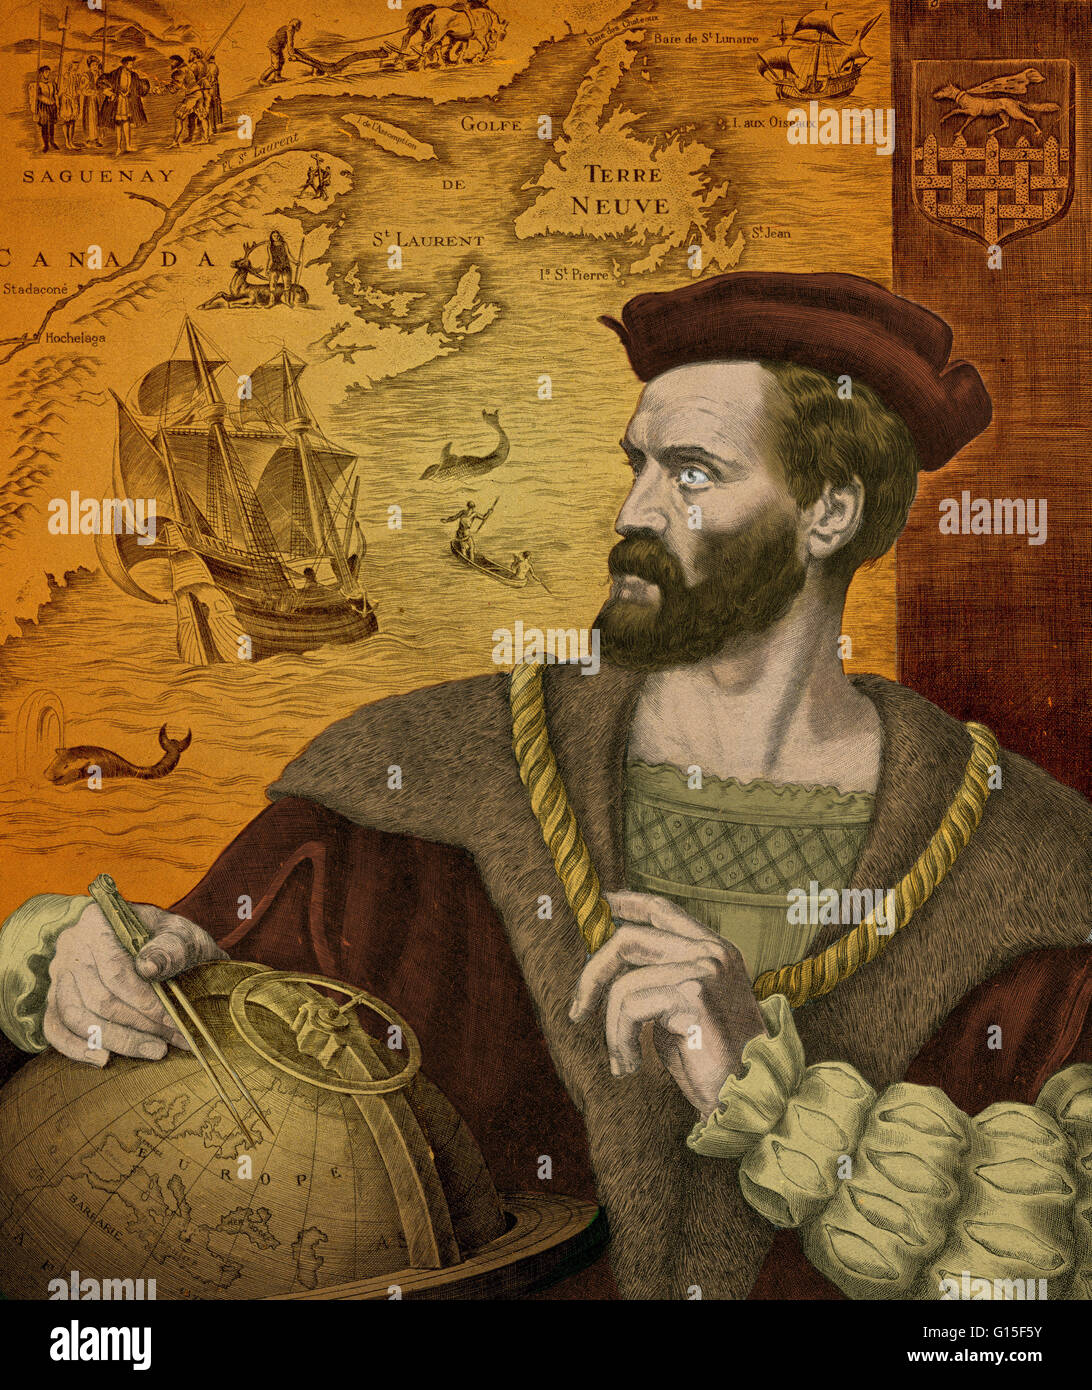 Jacques Cartier (1491-1557) was a French explorer who claimed ...